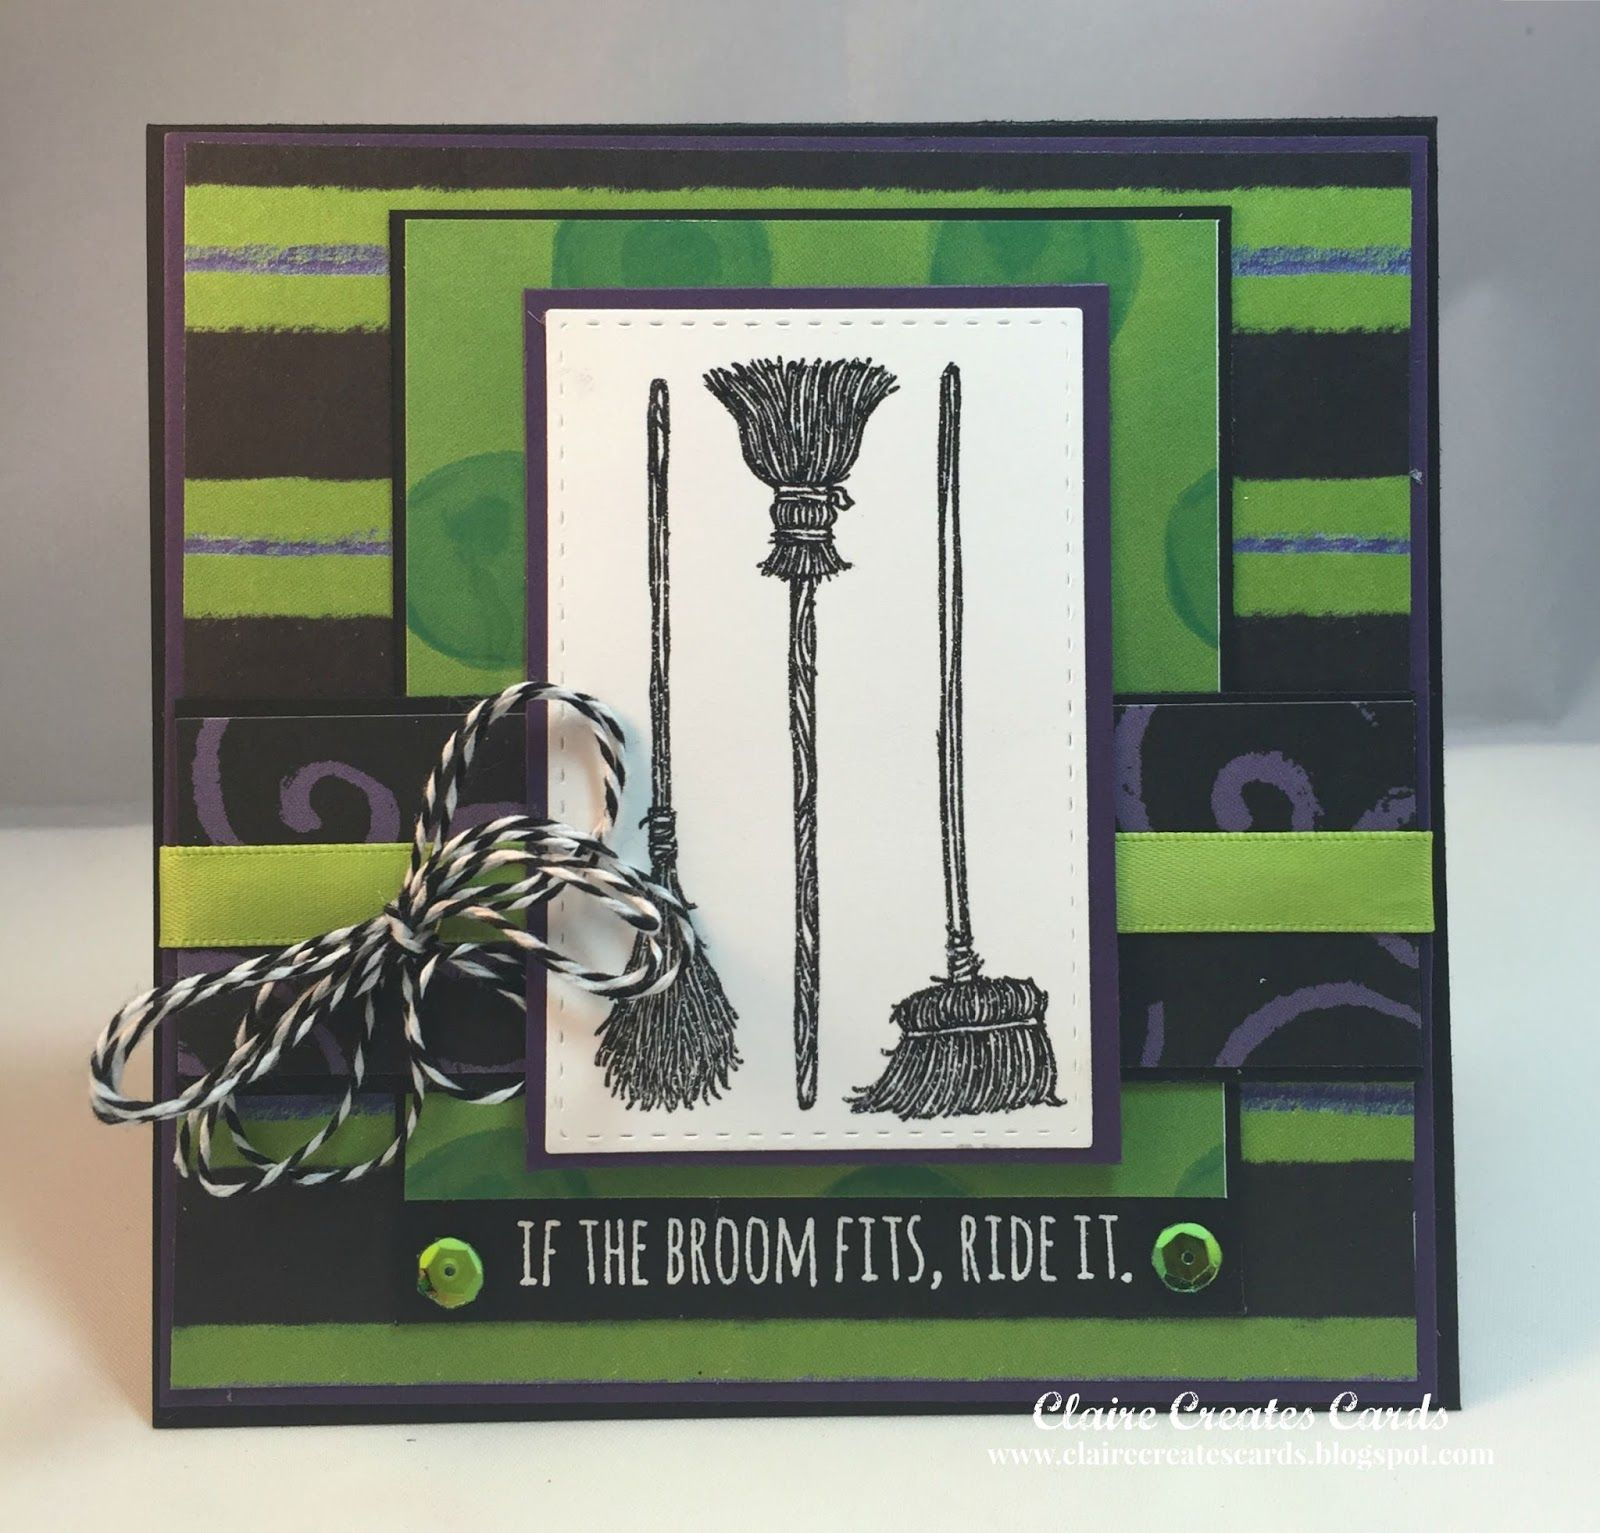 Claire Creates Cards: If The Broom Fits, Ride It! --PP 260